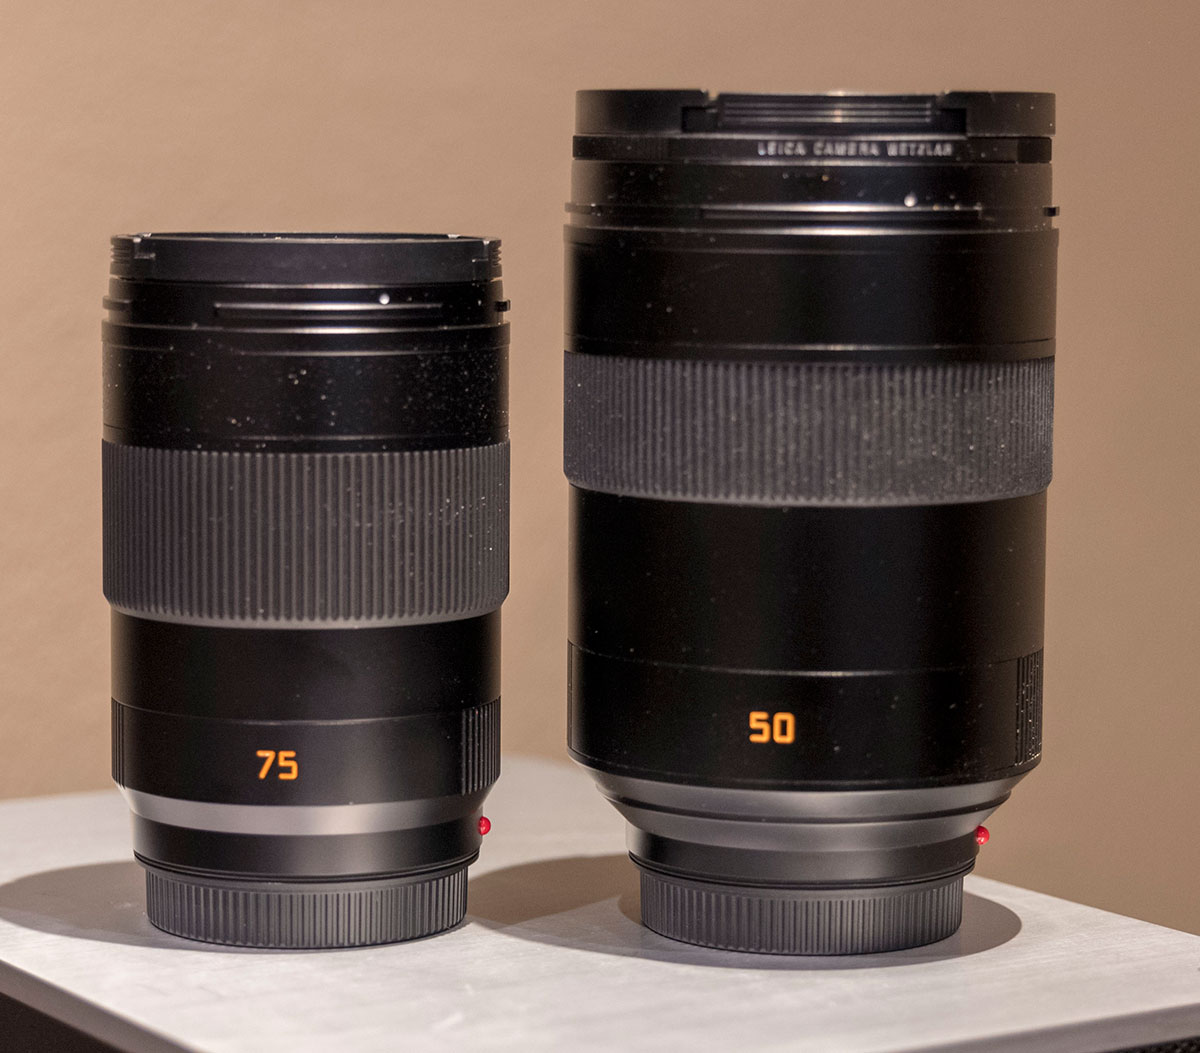 Leica APO-Summicron-SL 75mm f/2 ASPH lens now shipping (part 2)